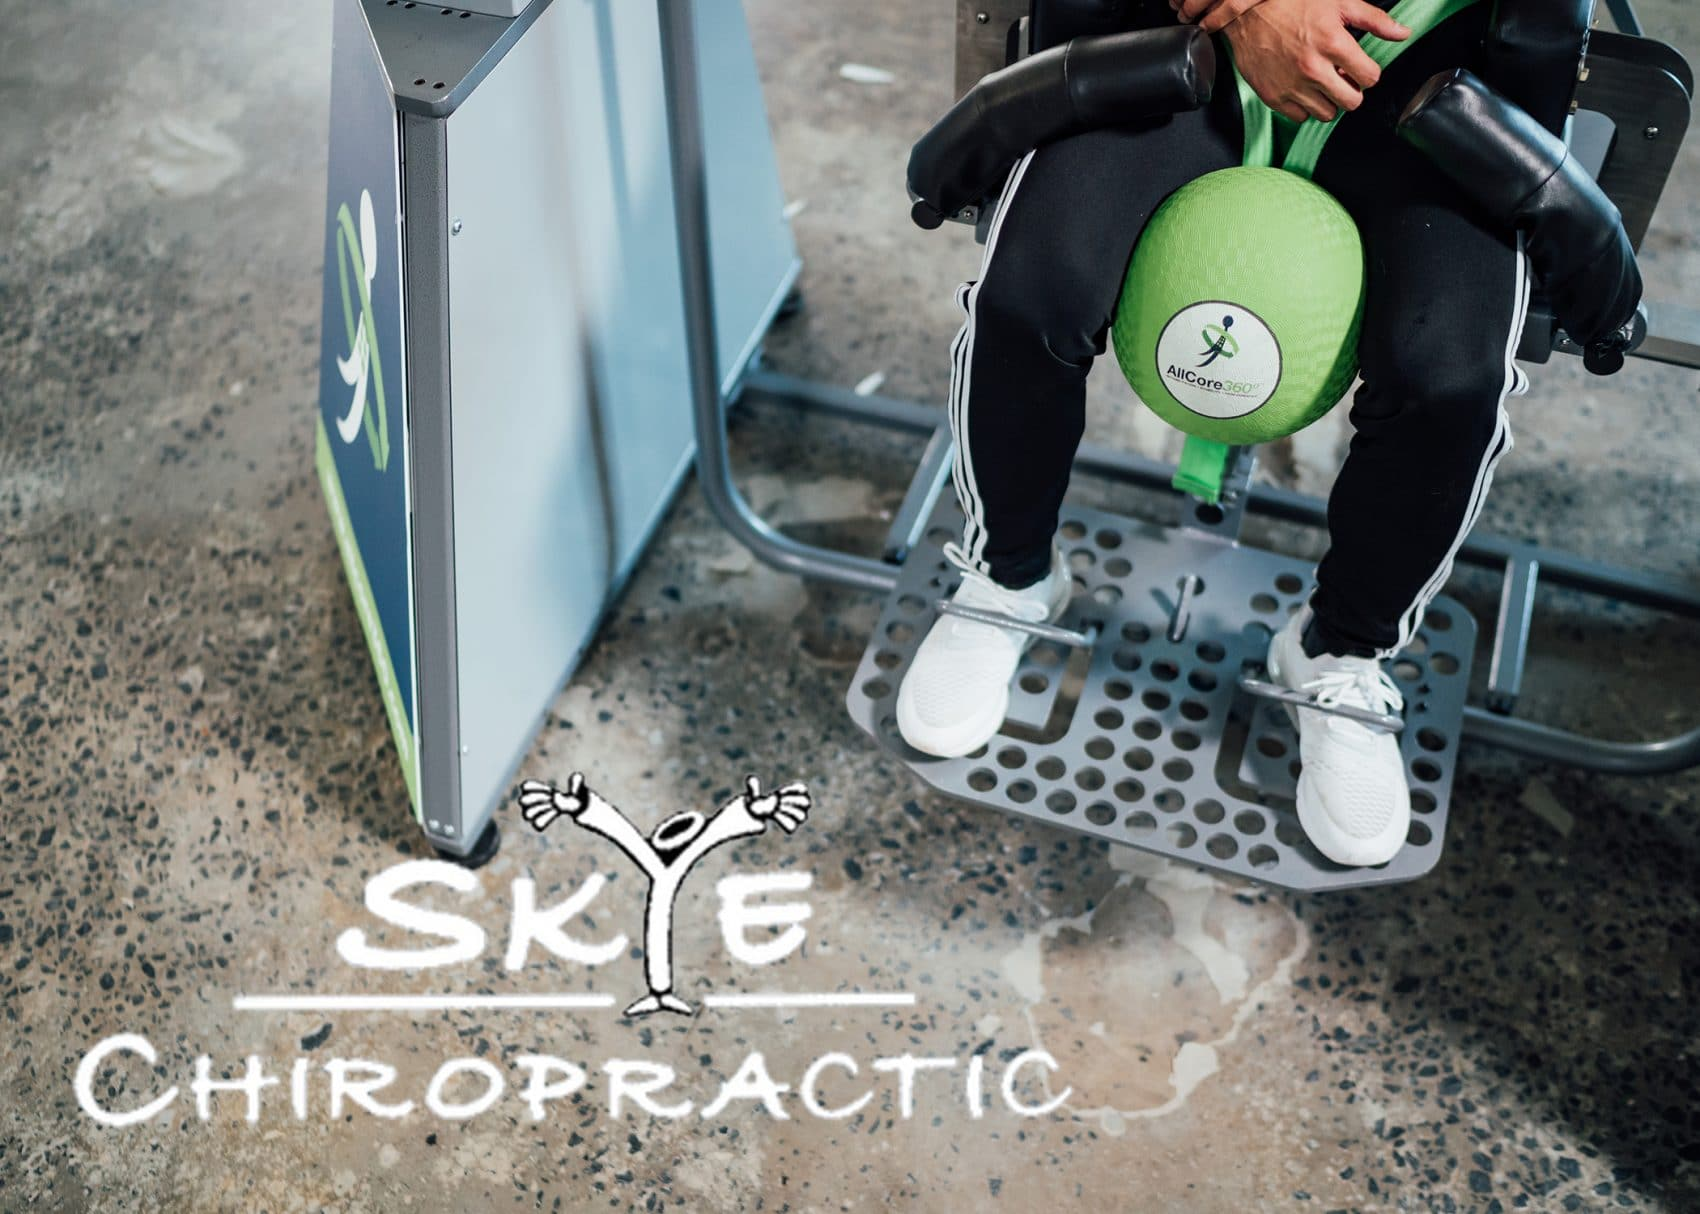 Skye Chiropractic Delivers Premium Recovery and Training to Patients and Athletes